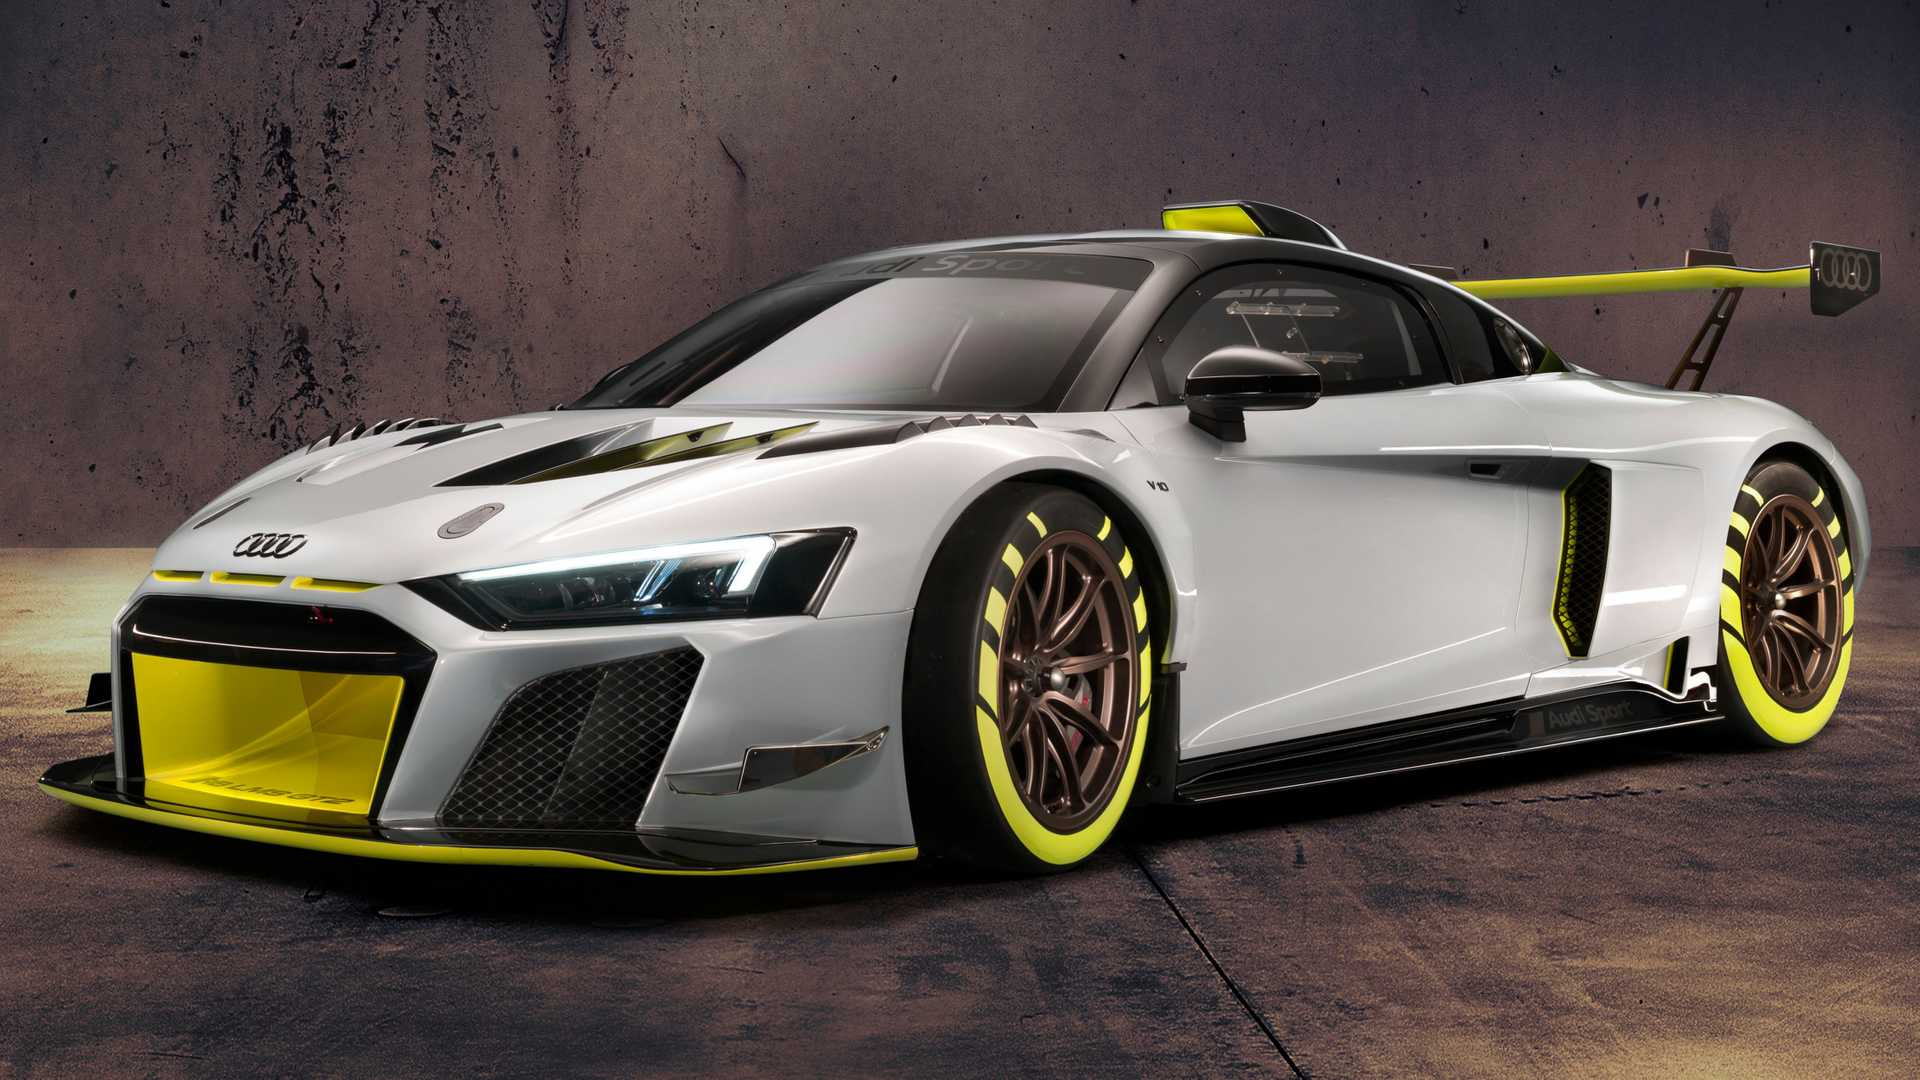 2020 Audi R8 LMS GT2 is a wild race car with 630 bhp 1920x1080